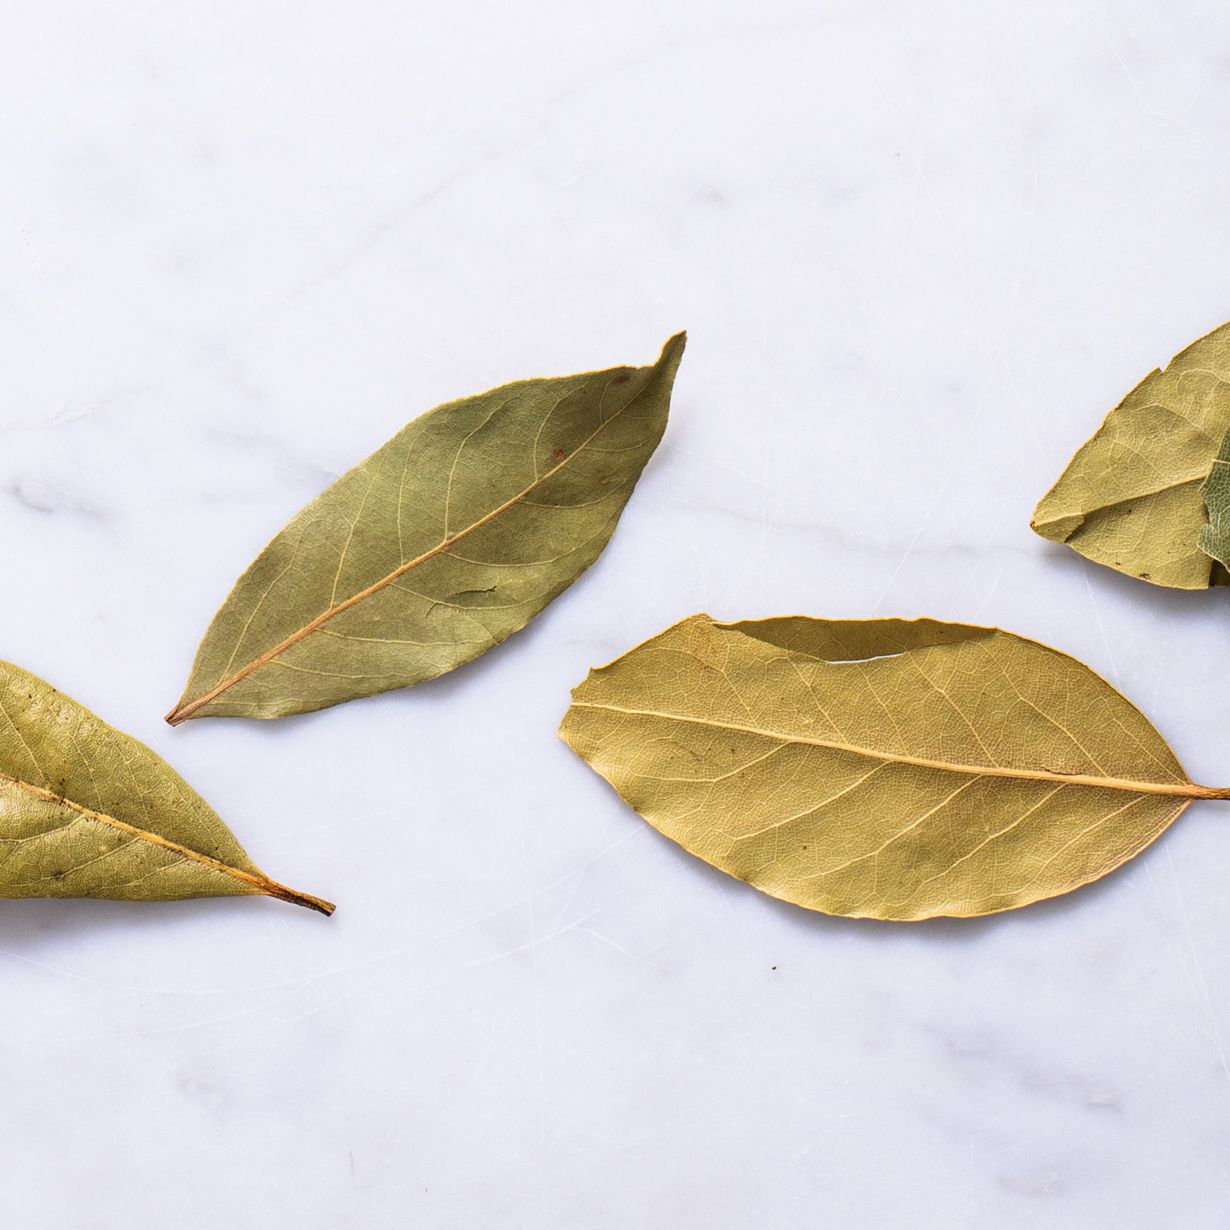 can bay leaf be used in keto diets?